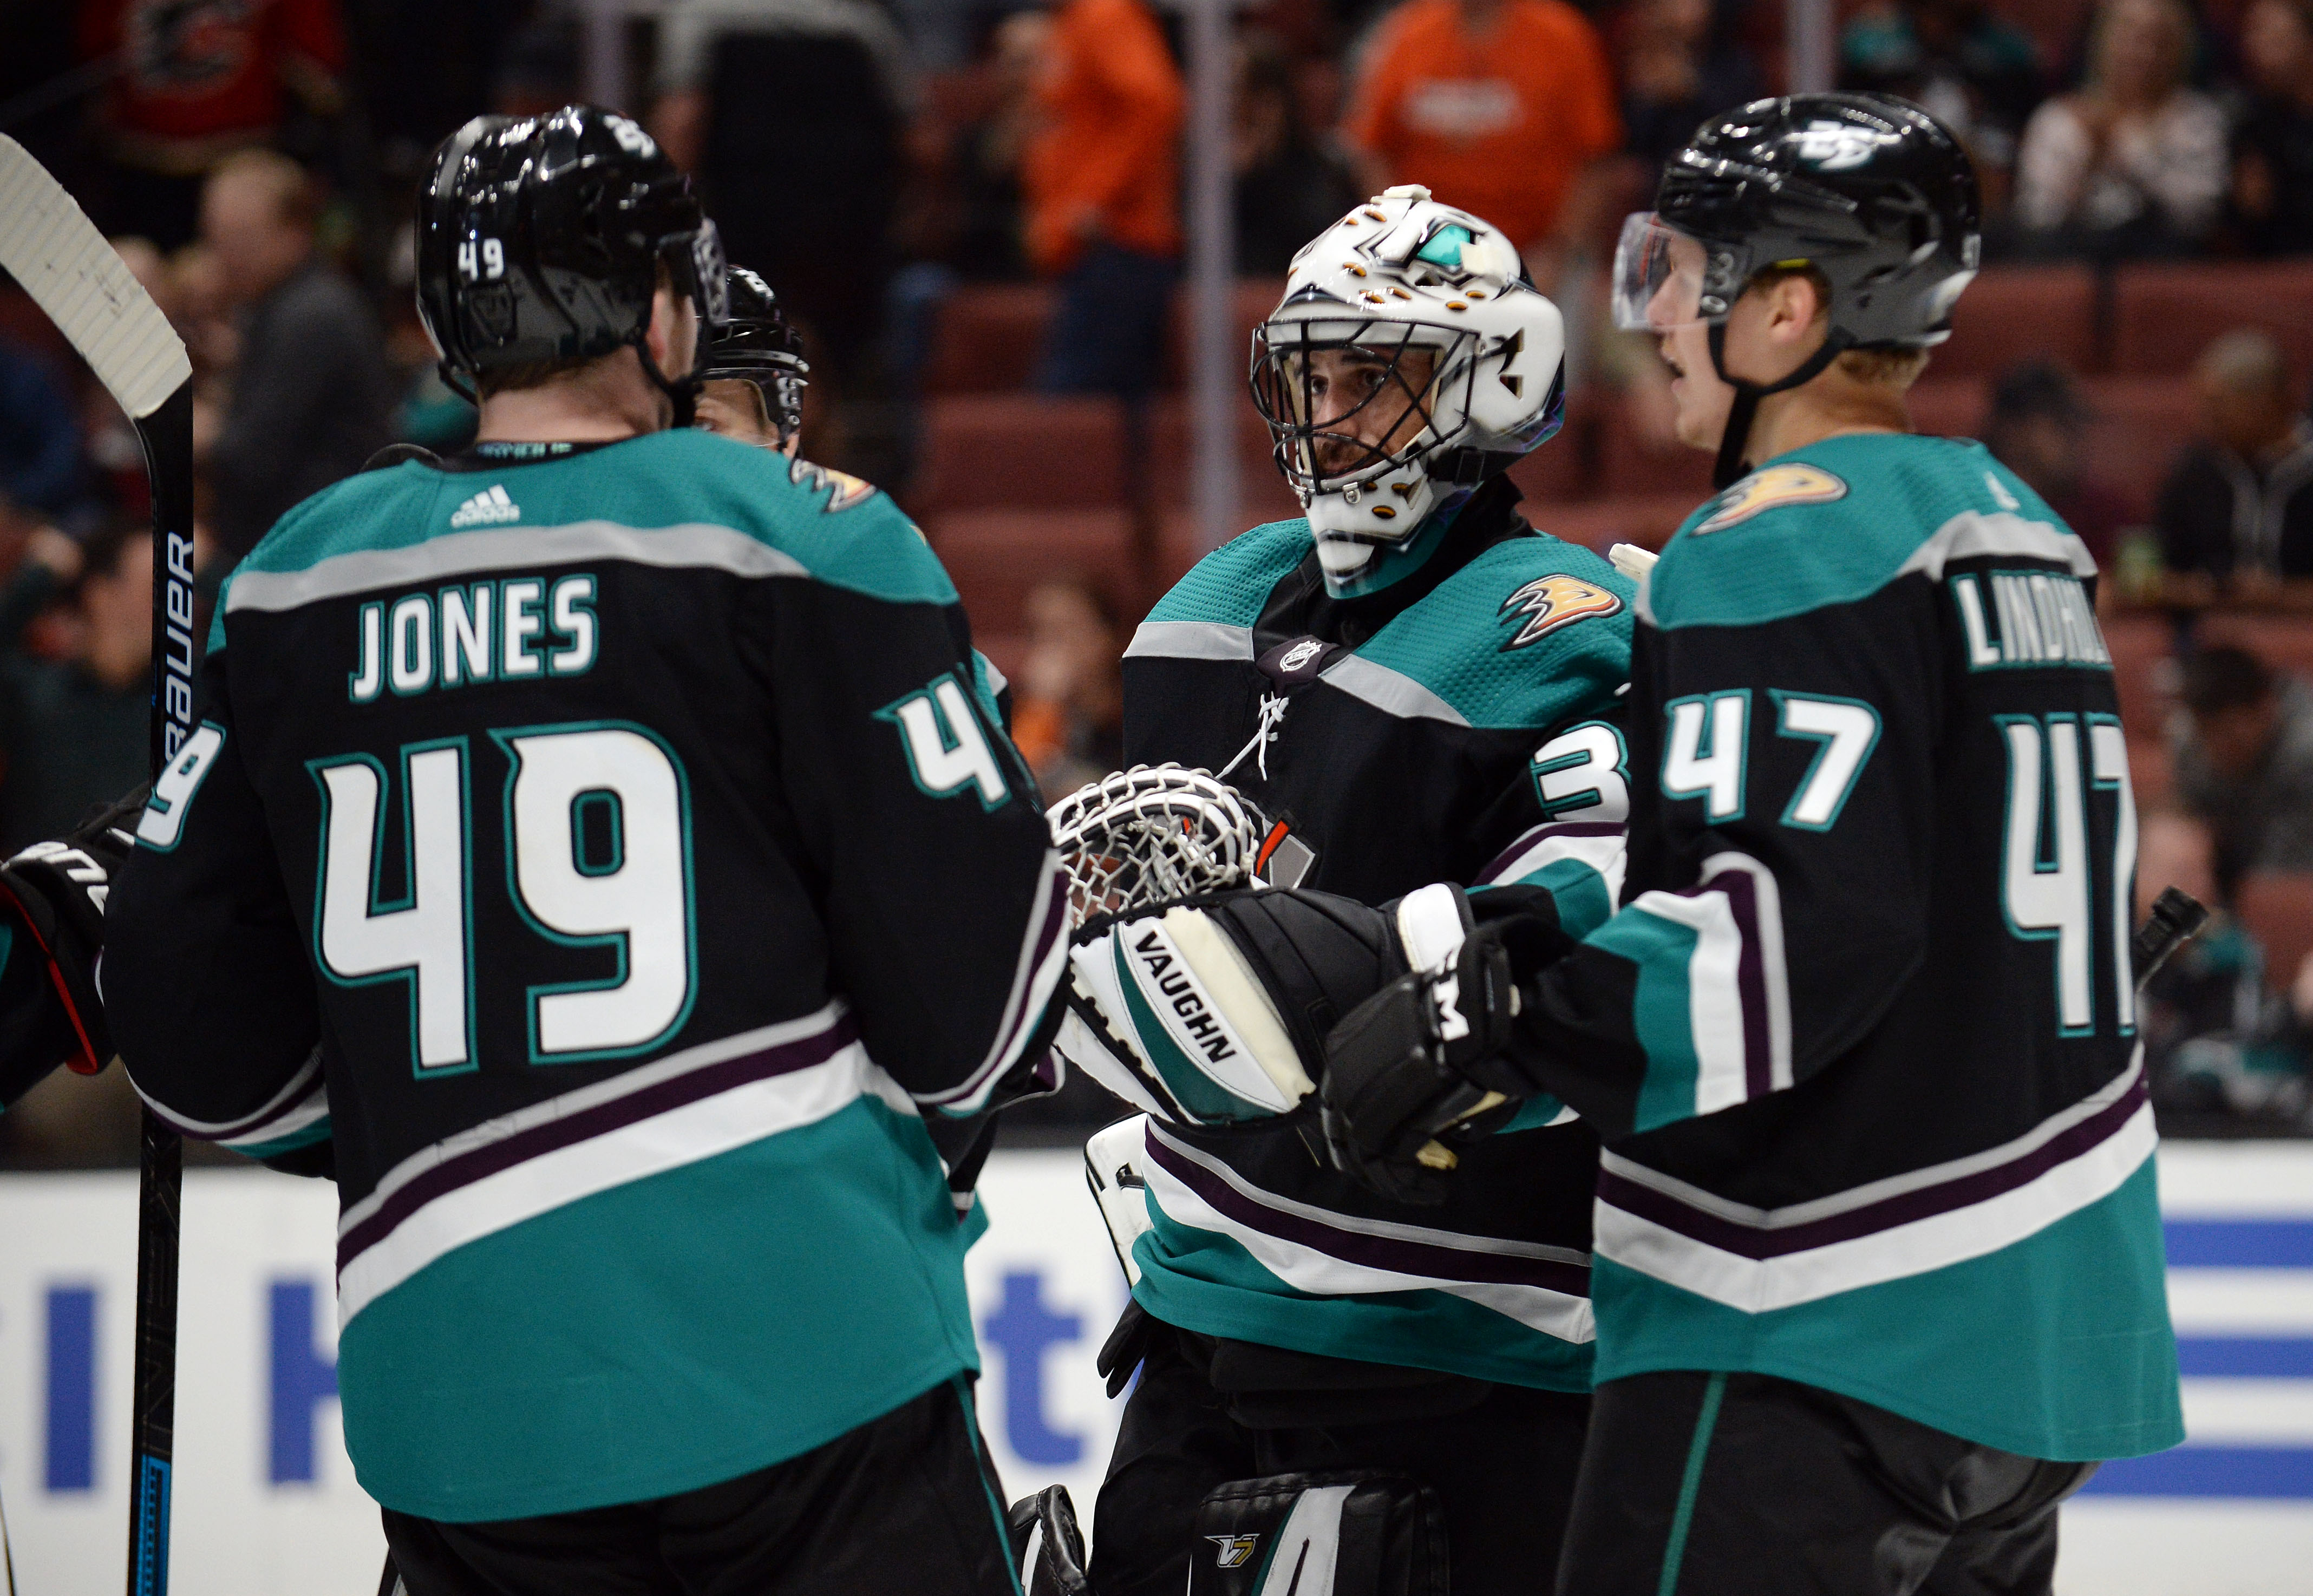 April 3, 2019; Anaheim, CA, USA; Anaheim Ducks goaltender Ryan Miller (30) celebrates the 3-1 victory with left wing Max Jones (49) and defenseman Hampus Lindholm (47) against the Calgary Flames at Honda Center.